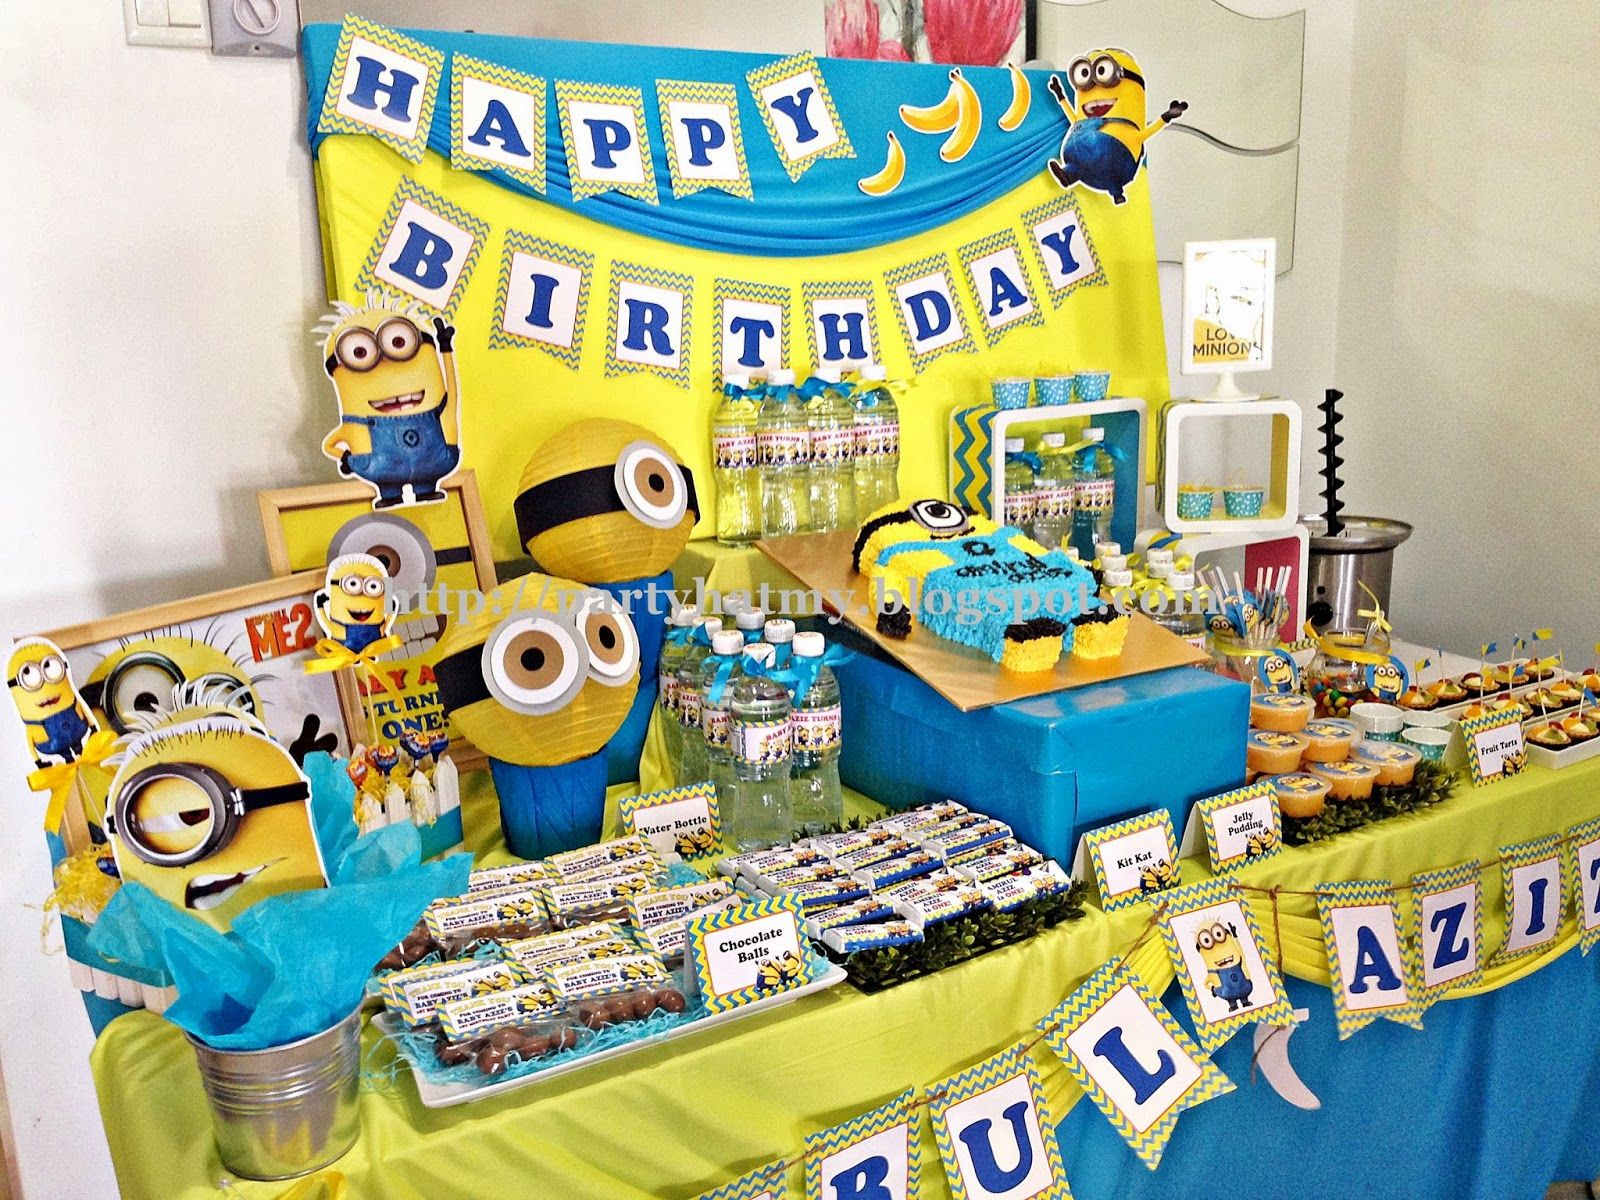 Remarkable Minion Birthday Party Centerpieces and diy minion birthday party  ideas